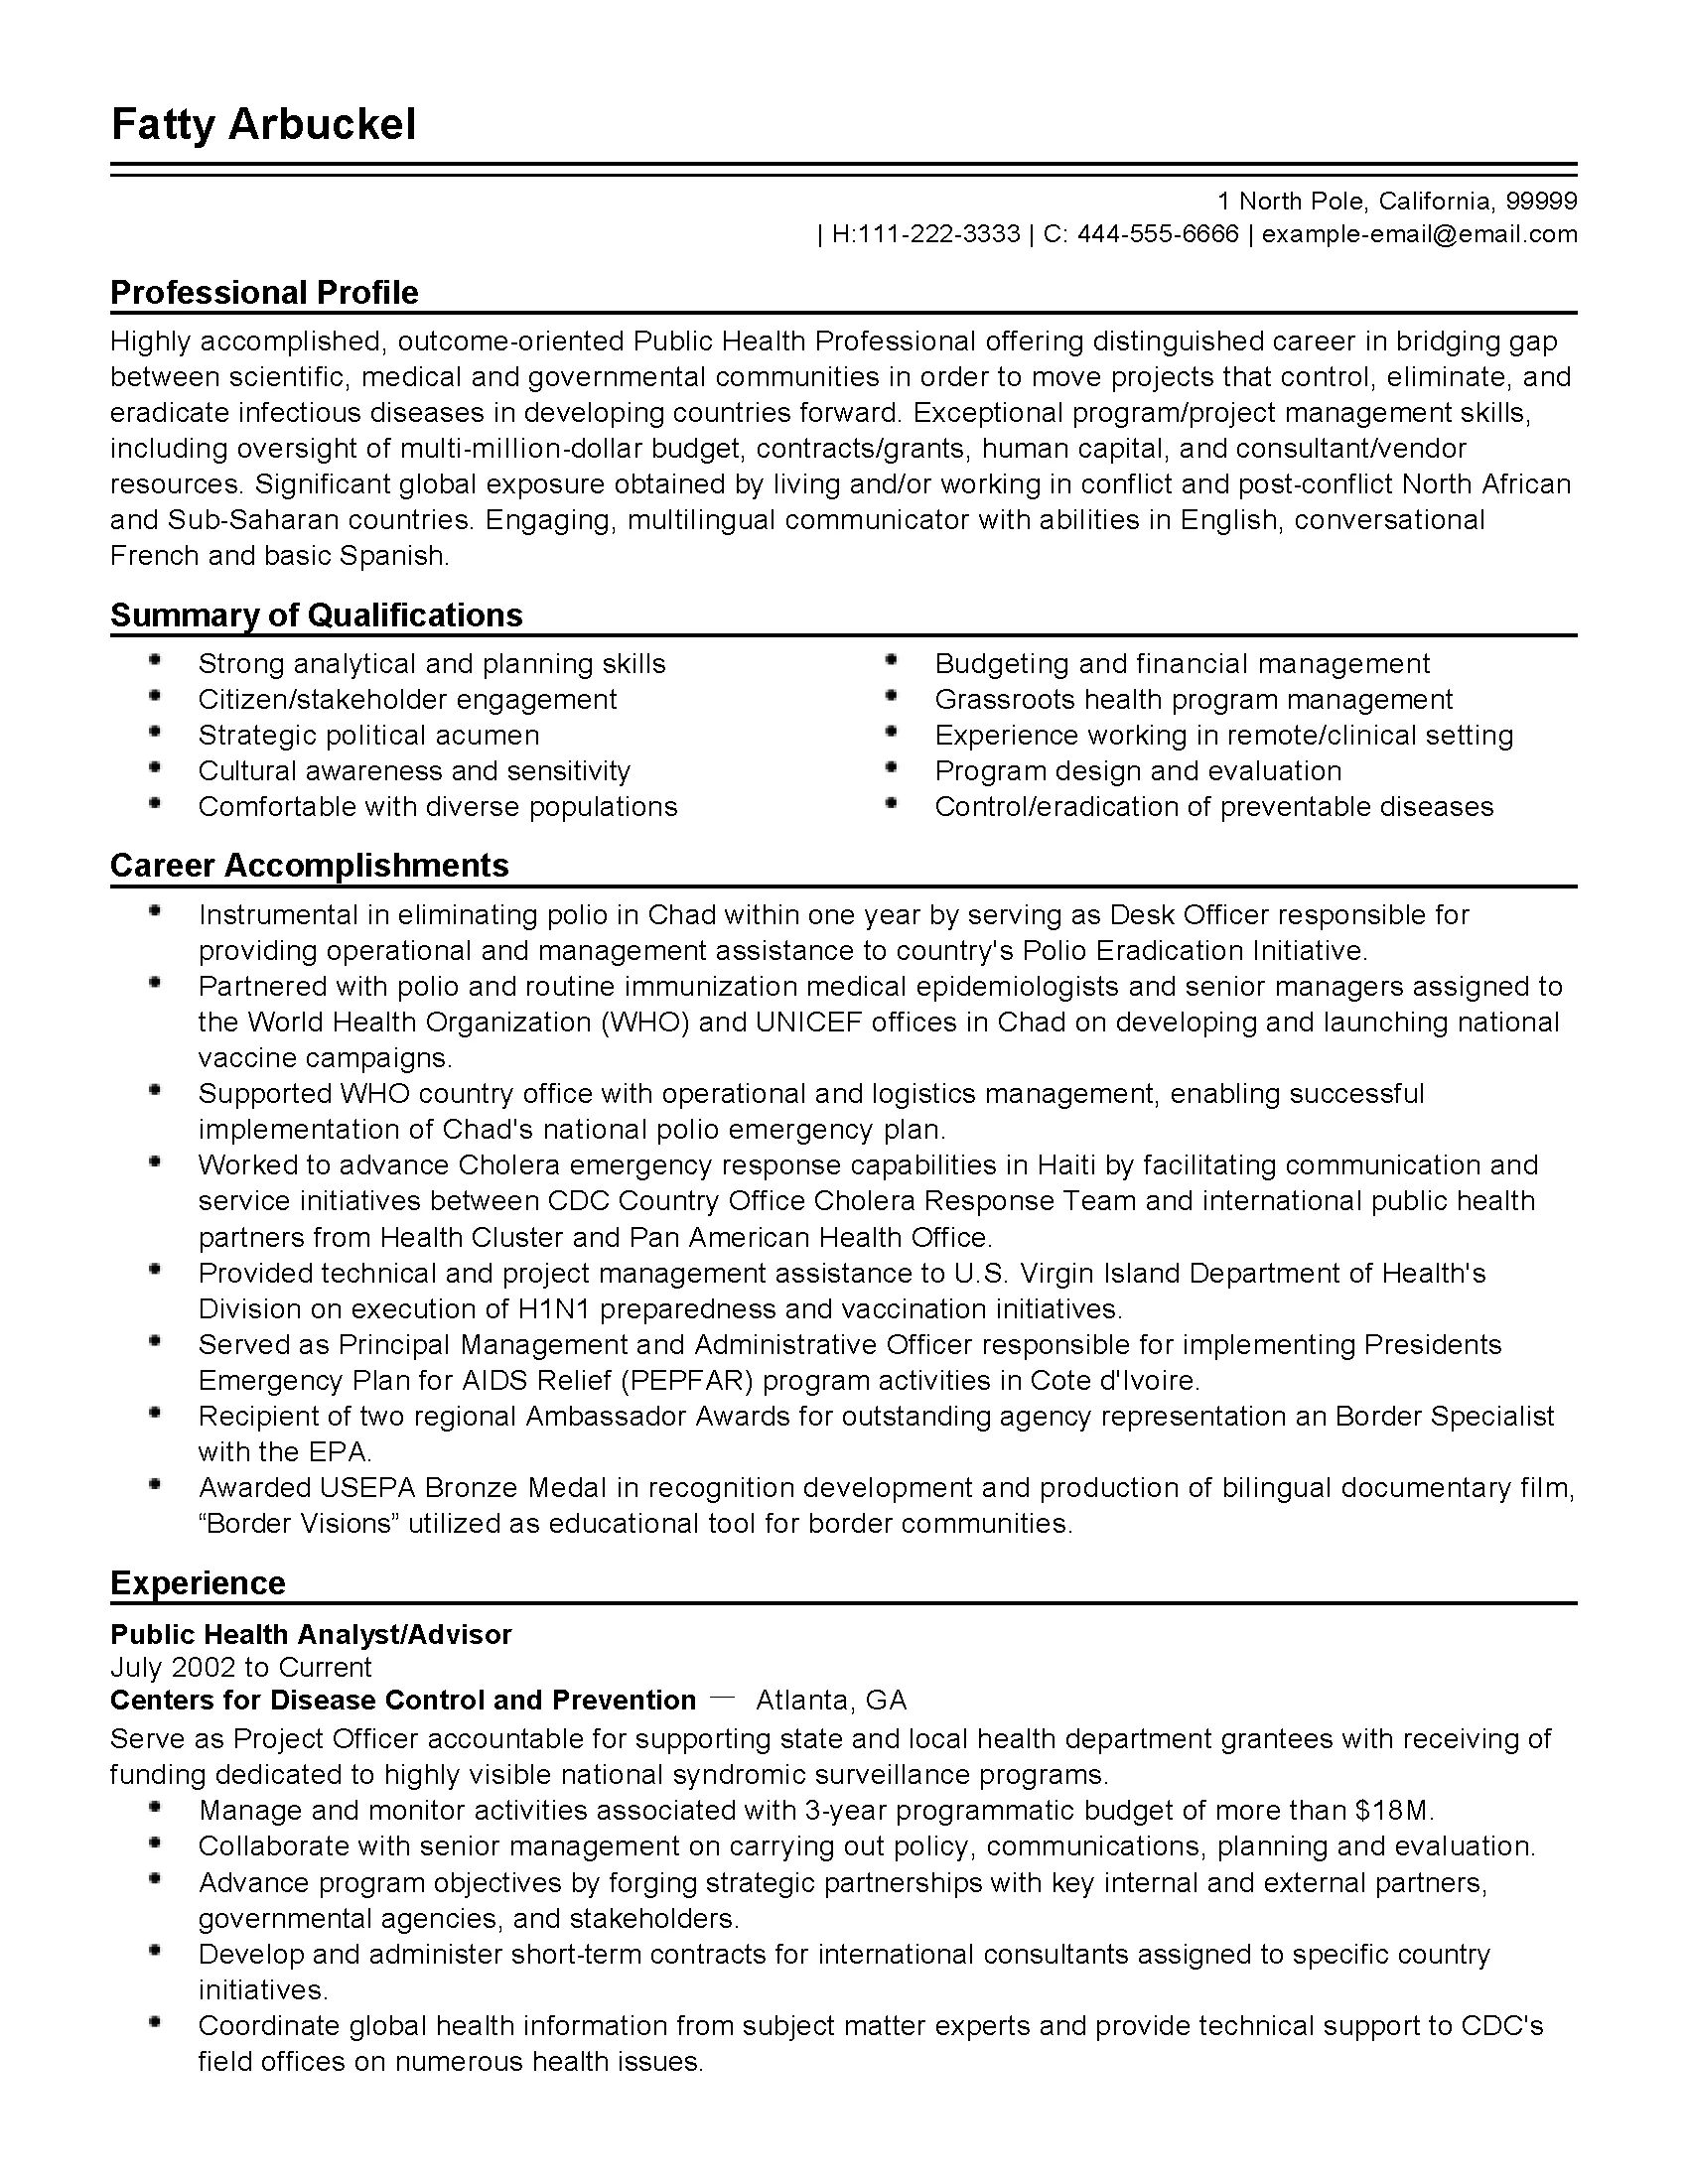 resume samples for public health professionals